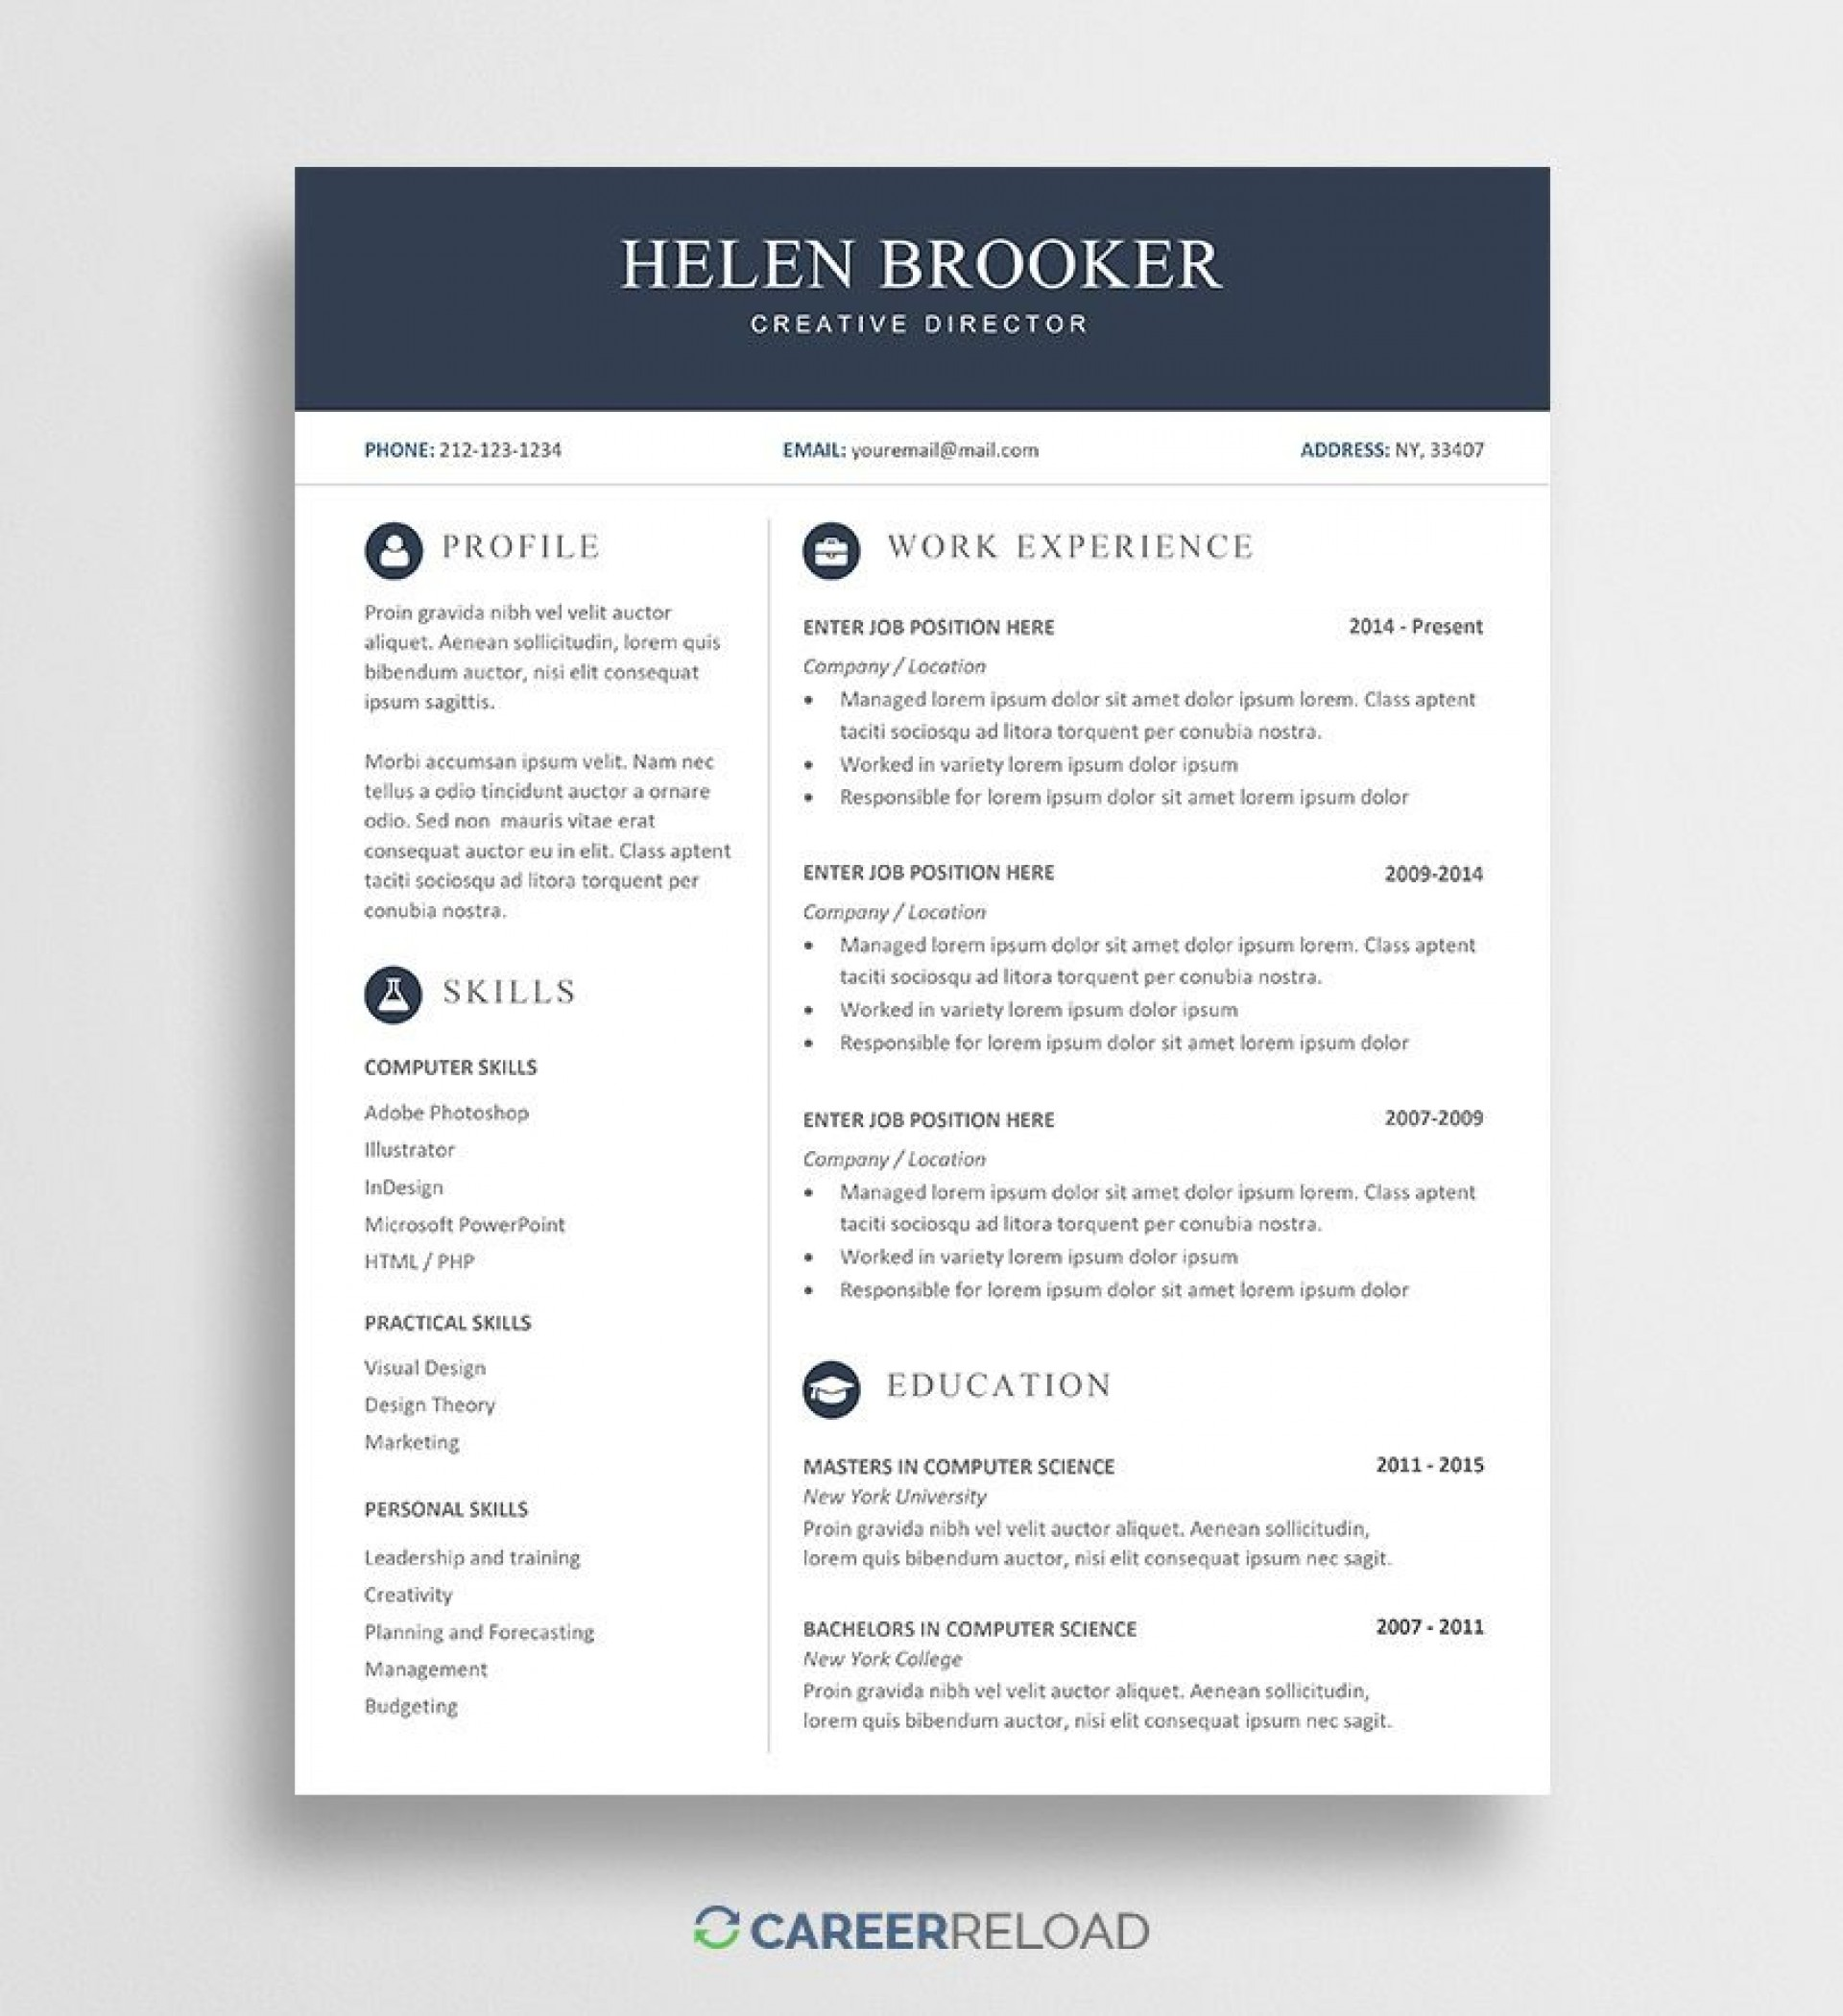 004 Fantastic Professional Resume Template Word Free Download Inspiration  Cv 2020 With Photo1920